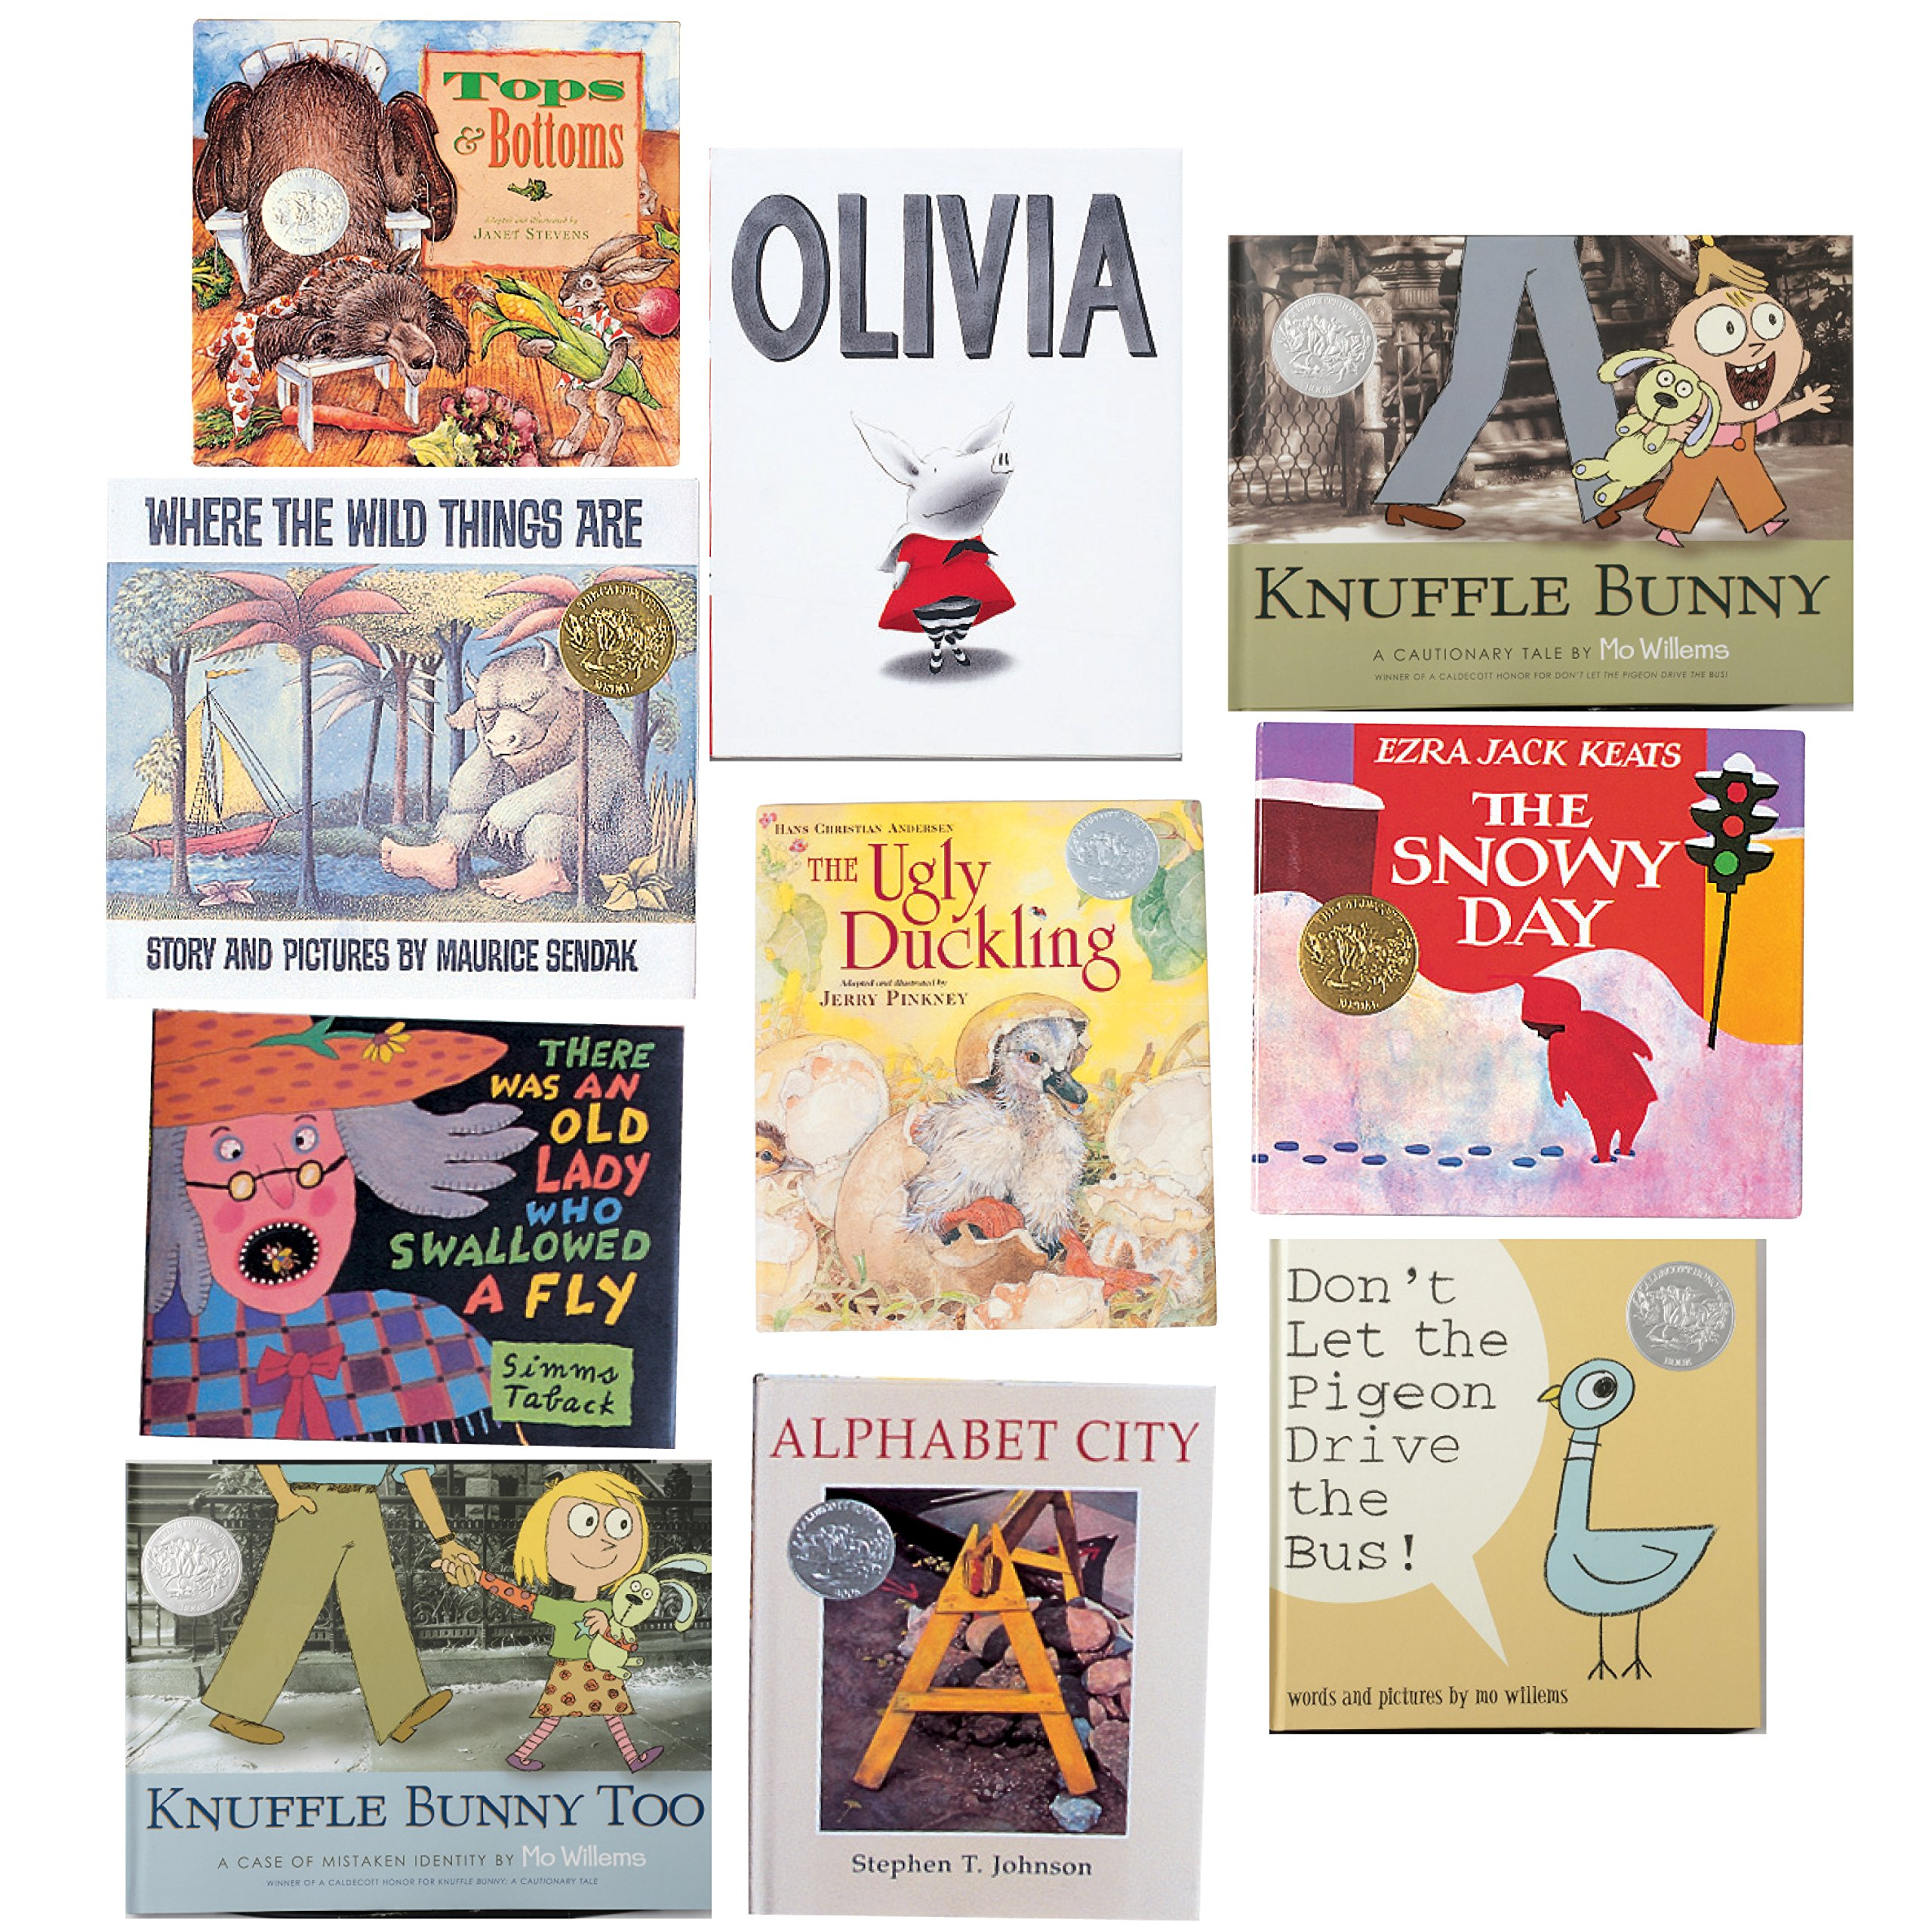 Constructive Playthings BOK-11 Caldecott Medal Collection of 10 Hardcover Books, Grade: Kindergarten to 3